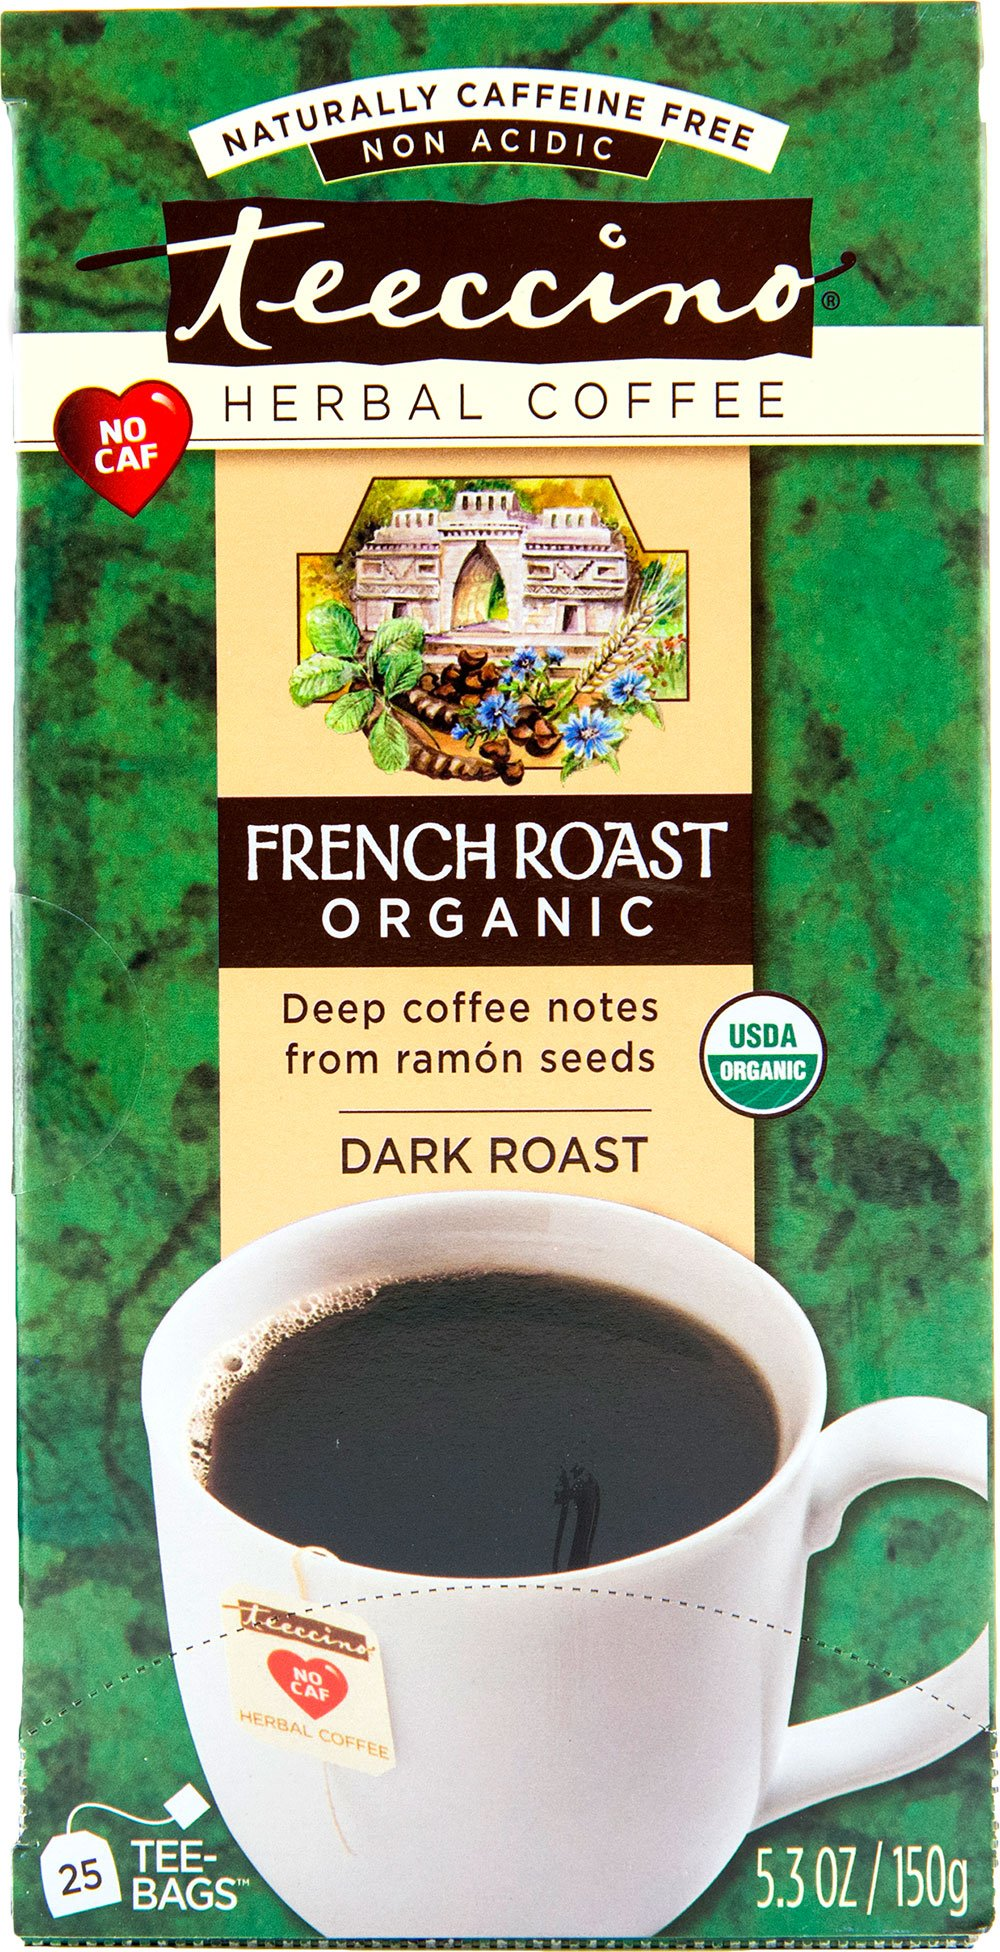 Teeccino French Roast Organic Chicory Herbal Tea Bags, Caffeine Free, Acid Free, 25 Count